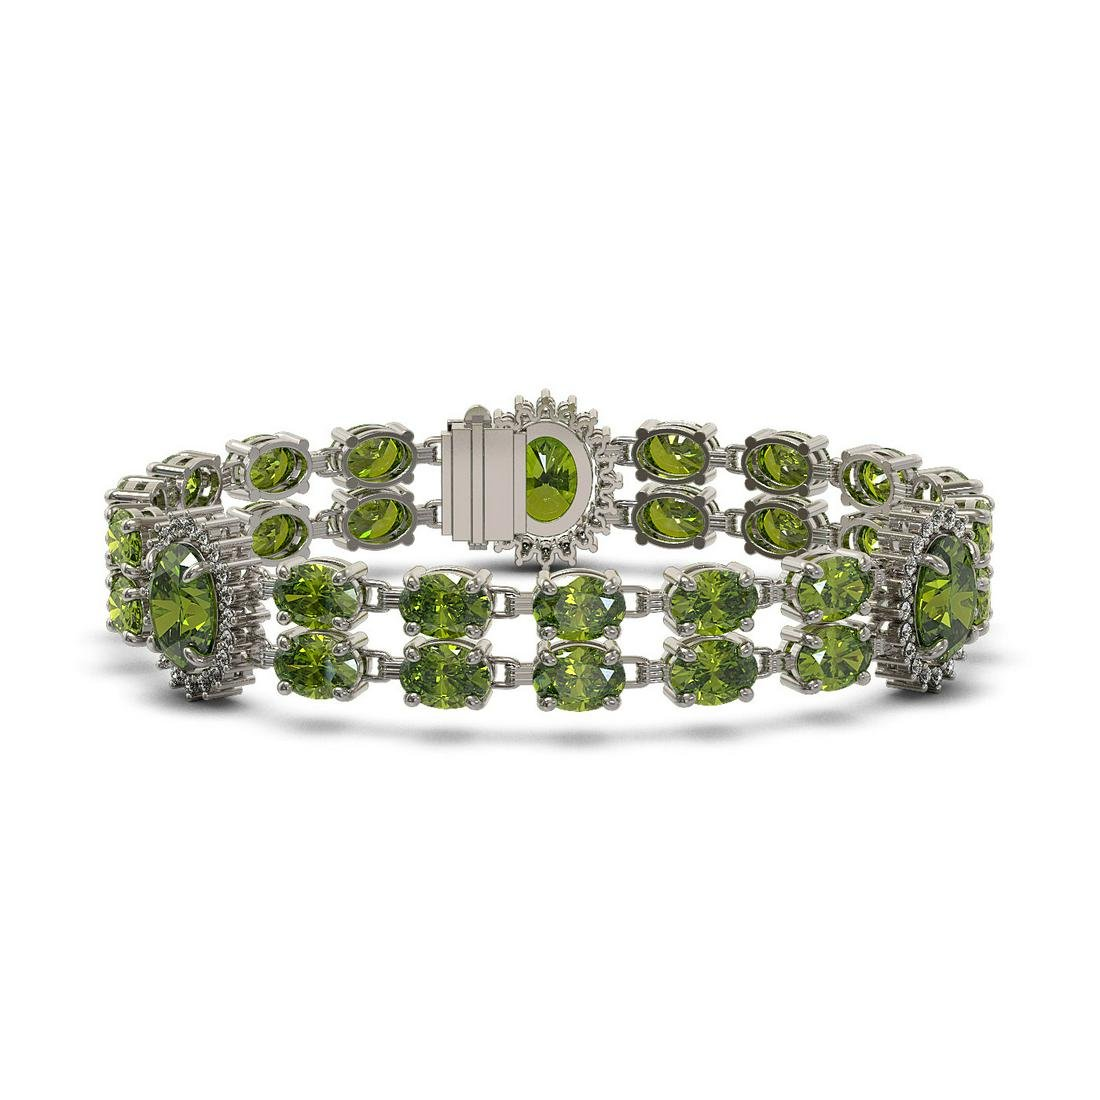 17.79 ctw Tourmaline & Diamond Bracelet 14K White Gold